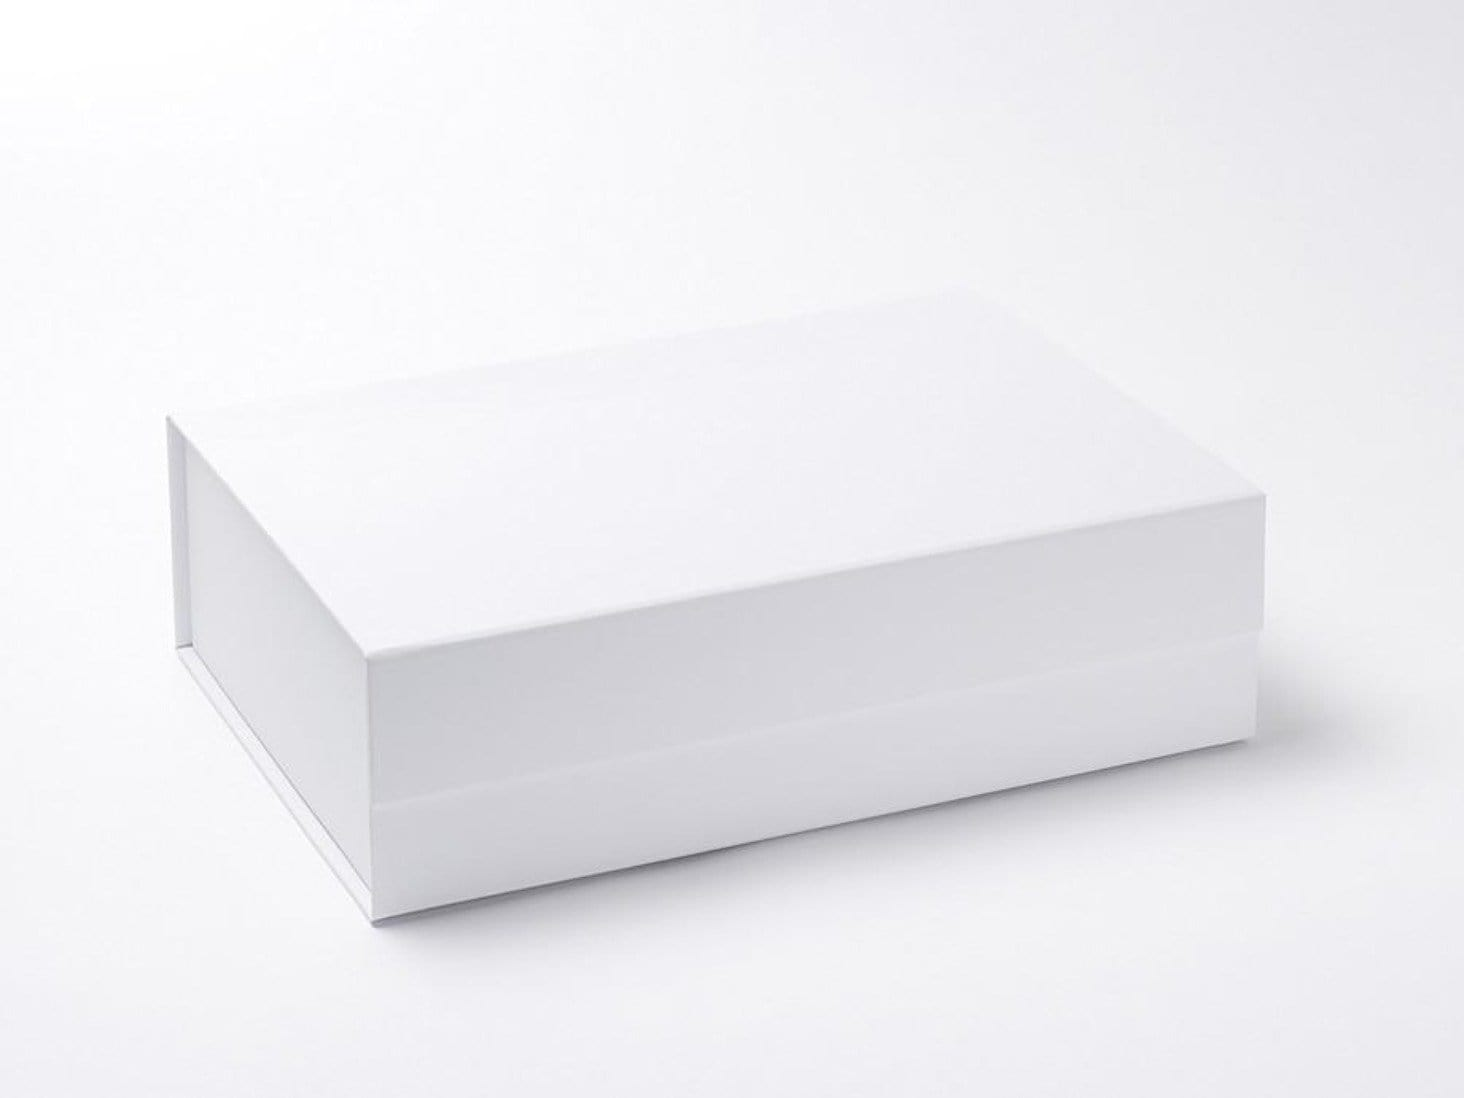 White A4 Deep Gift Box Sample without ribbon